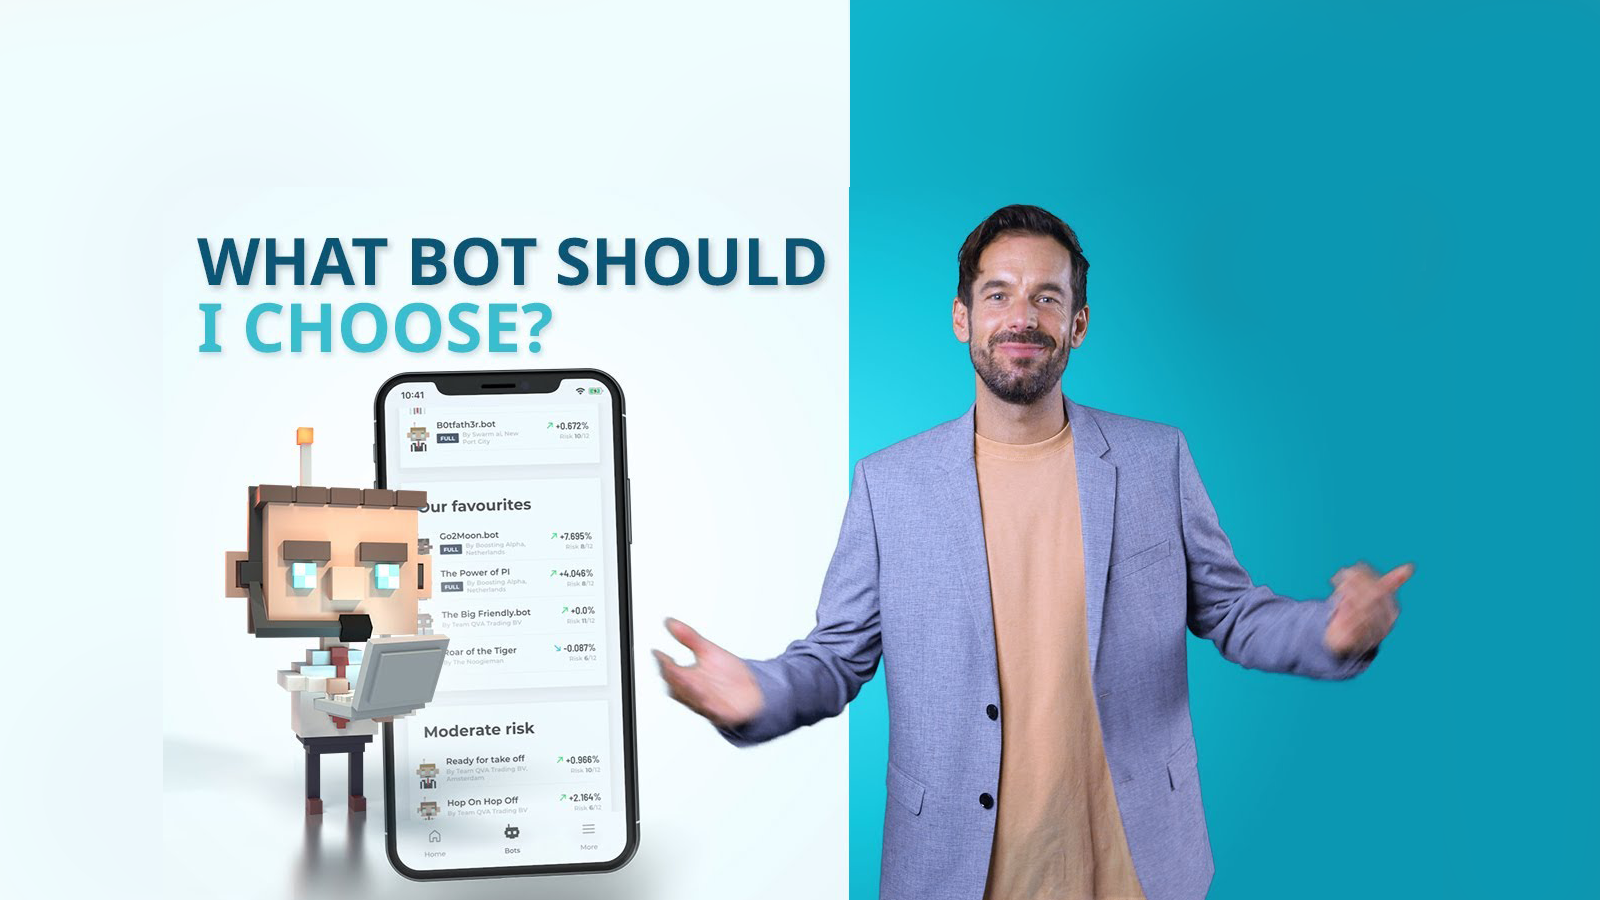 Which bot should I choose with the BOTS app?